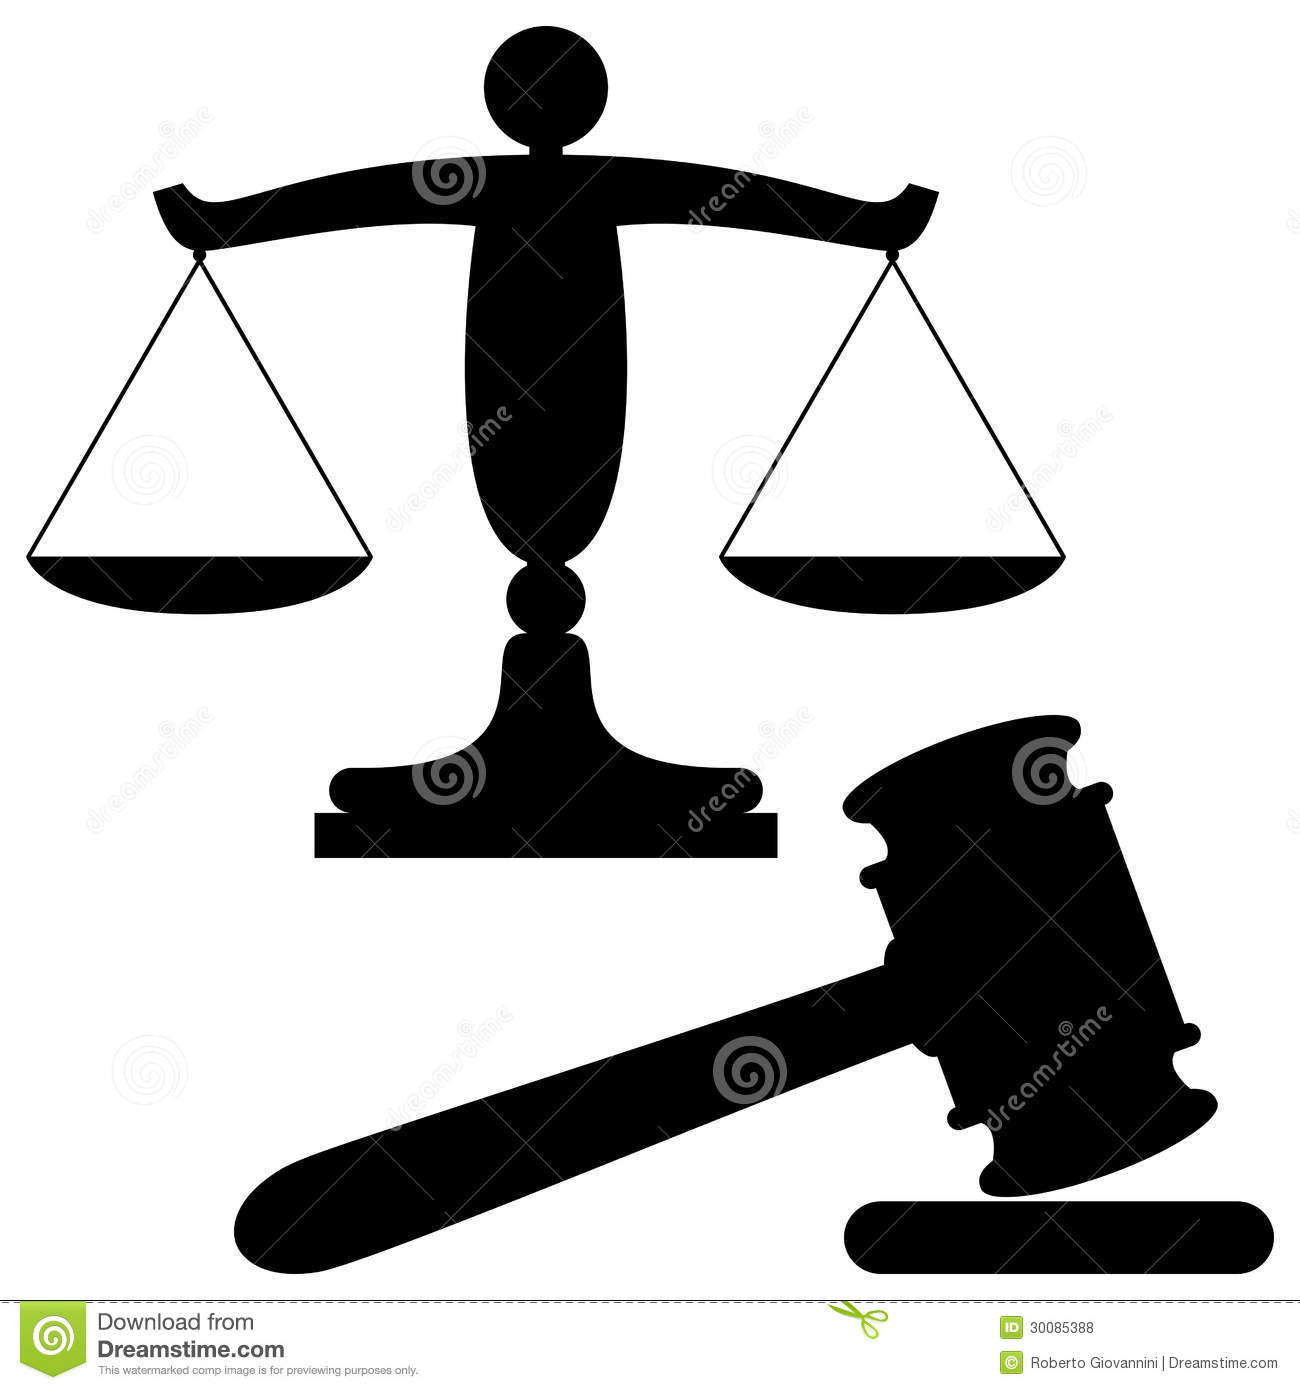 Scales of justice and gavel black silhouette symbols, isolated on ...